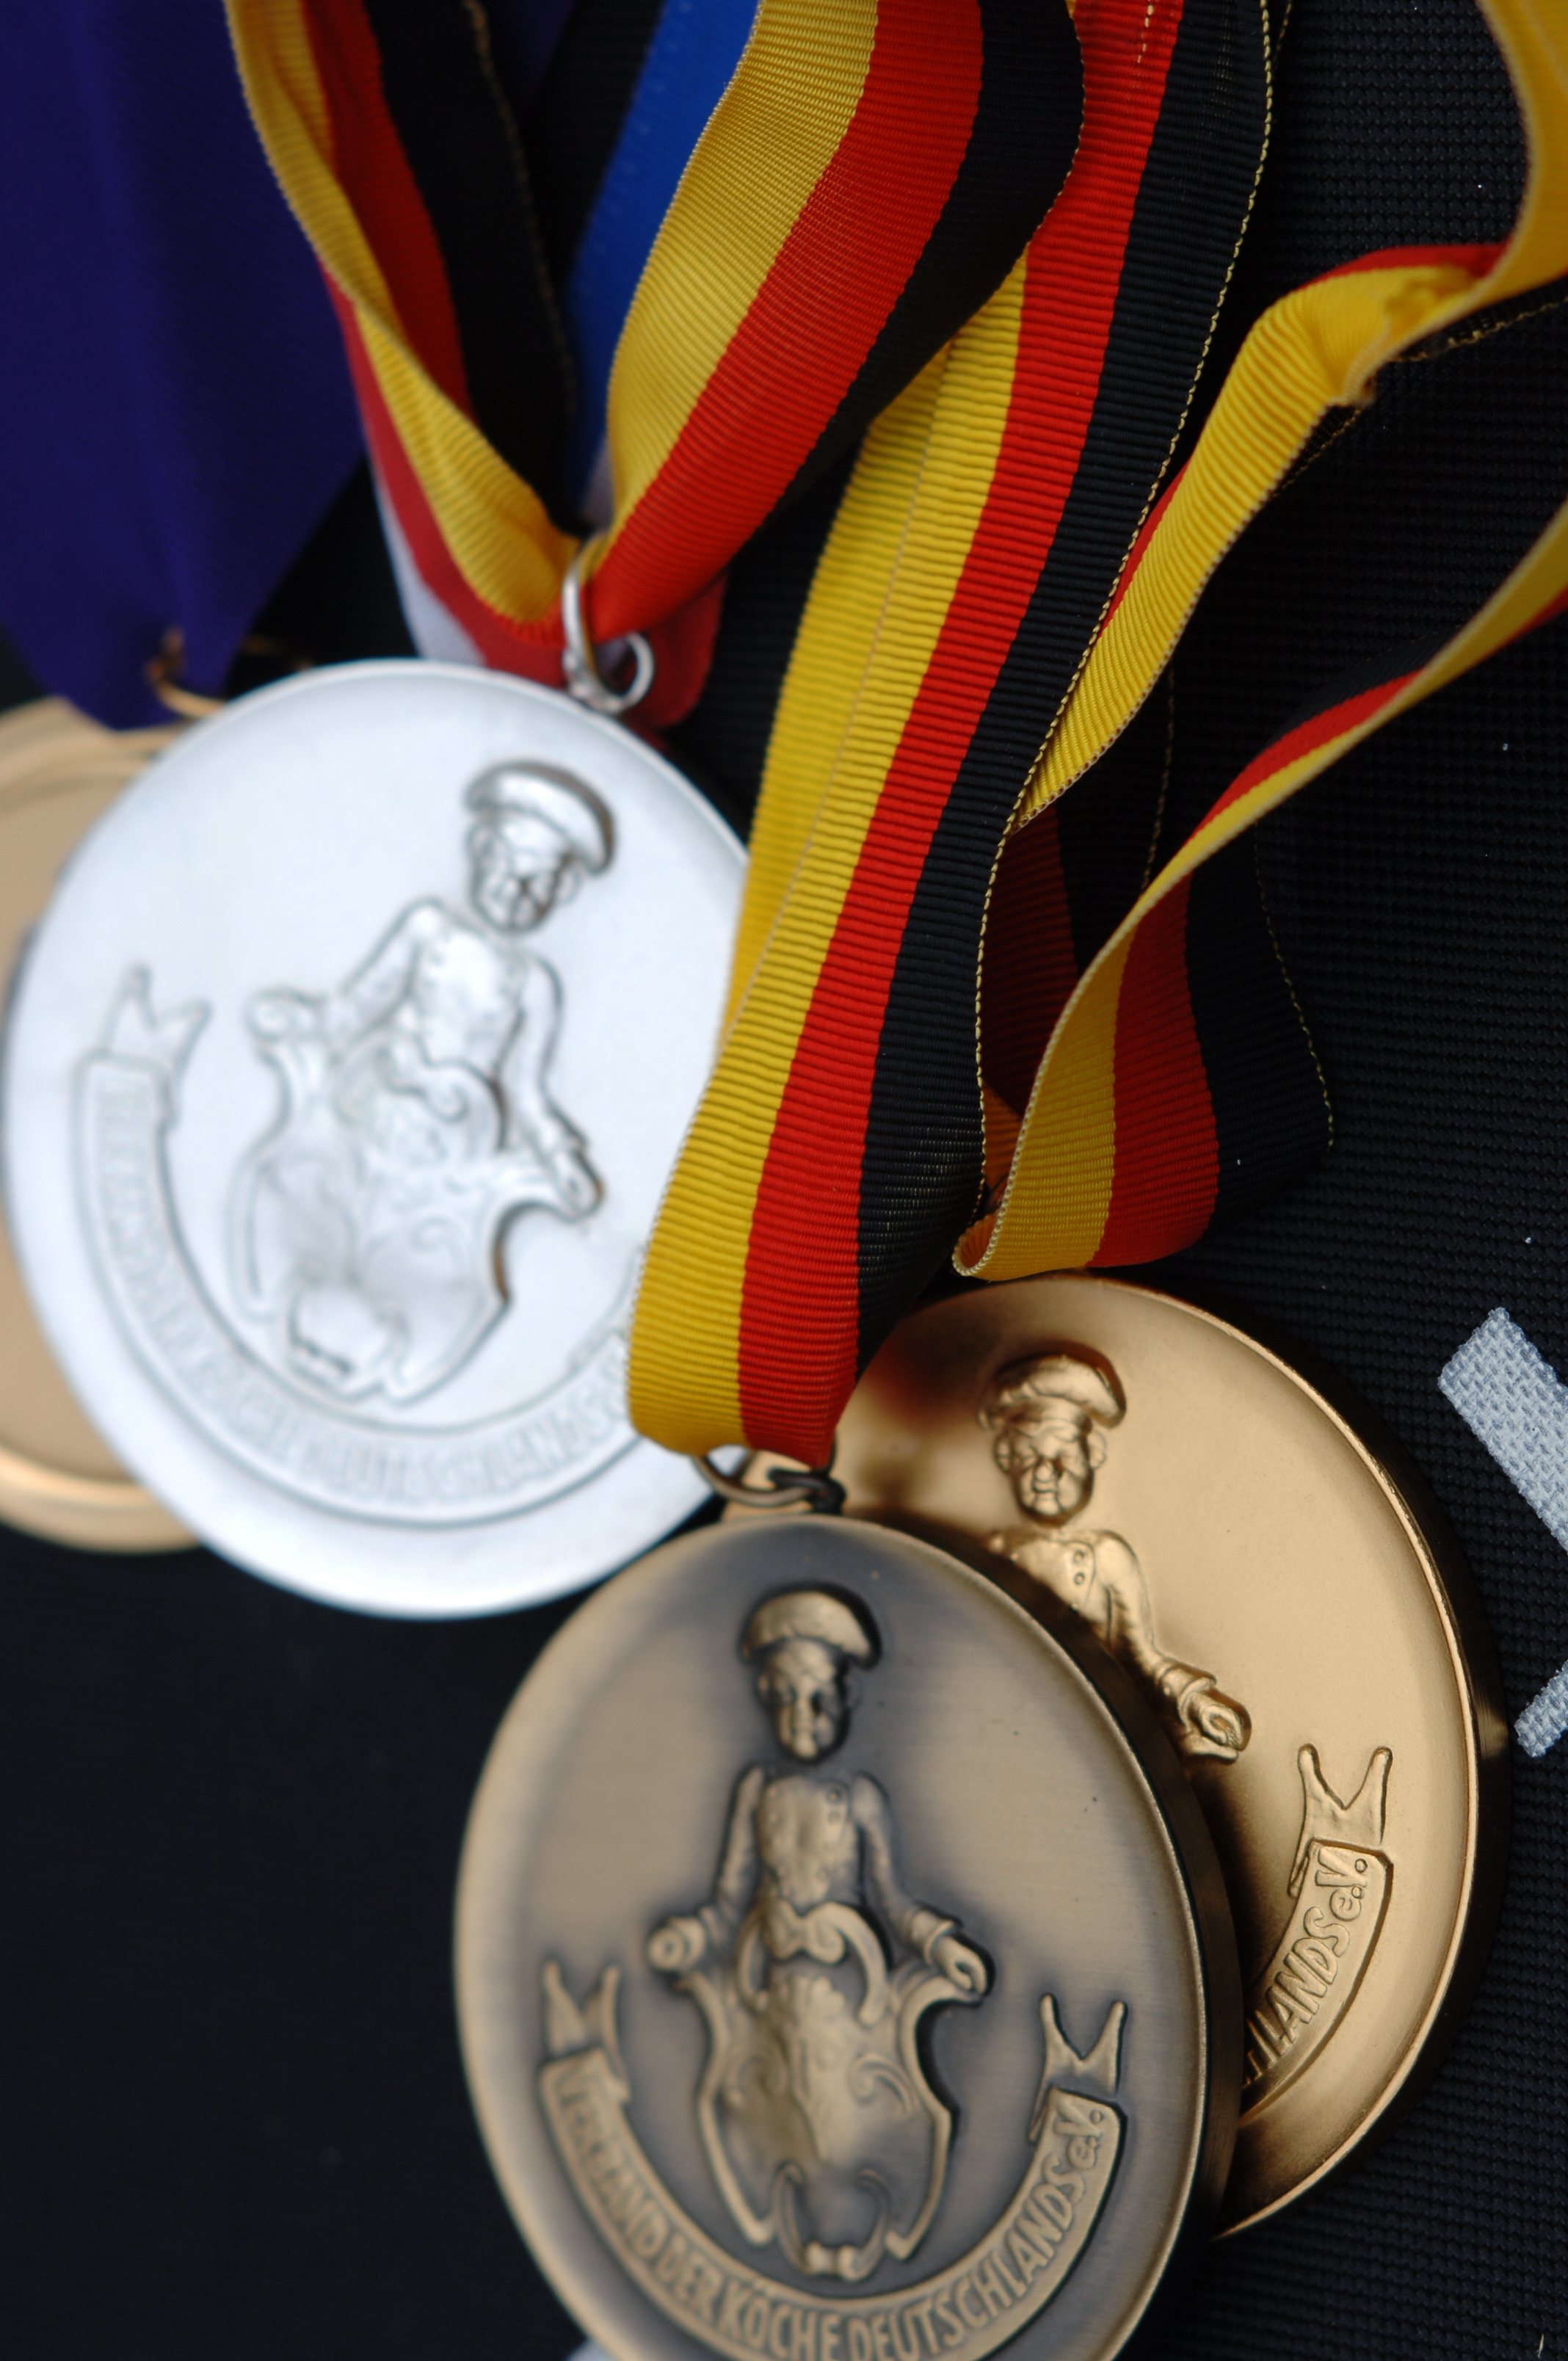 ANF CUL OLYMPIC MEDALS.jpg